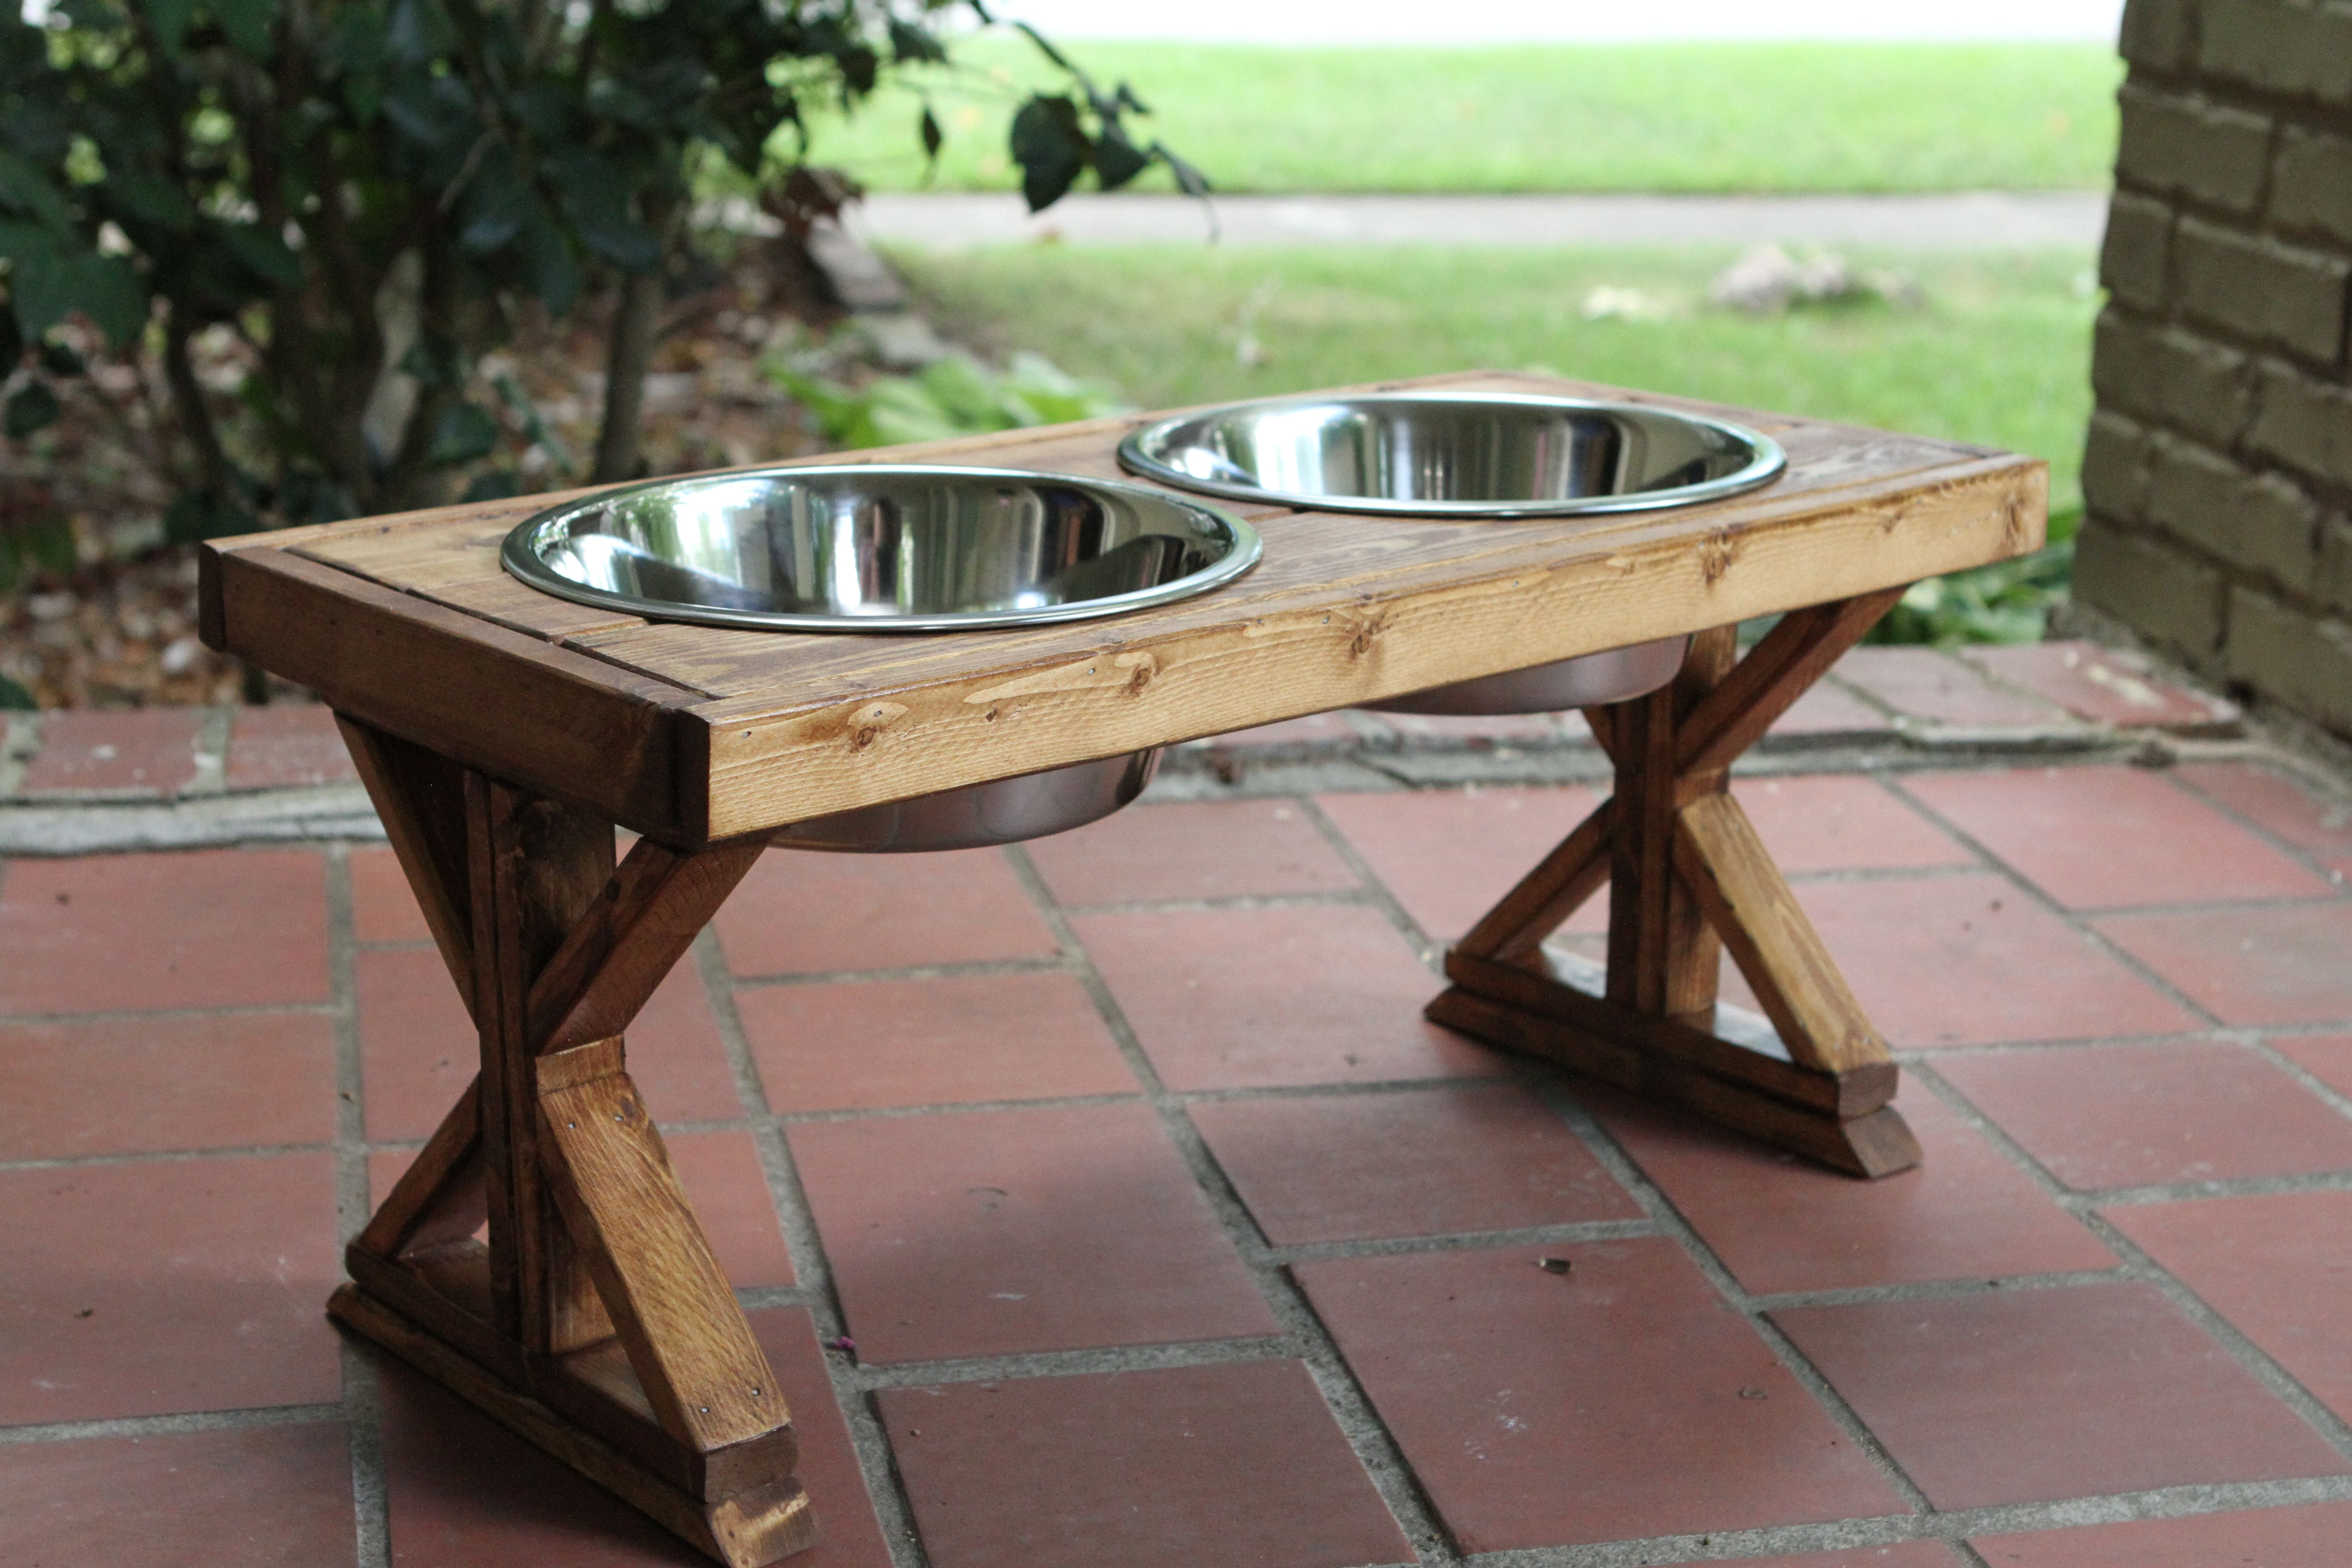 Fancy X Pet Feeder Stand Do It Yourself Home Projects From Ana White Easy Woodworking Projects Woodworking Projects Diy Woodworking Projects